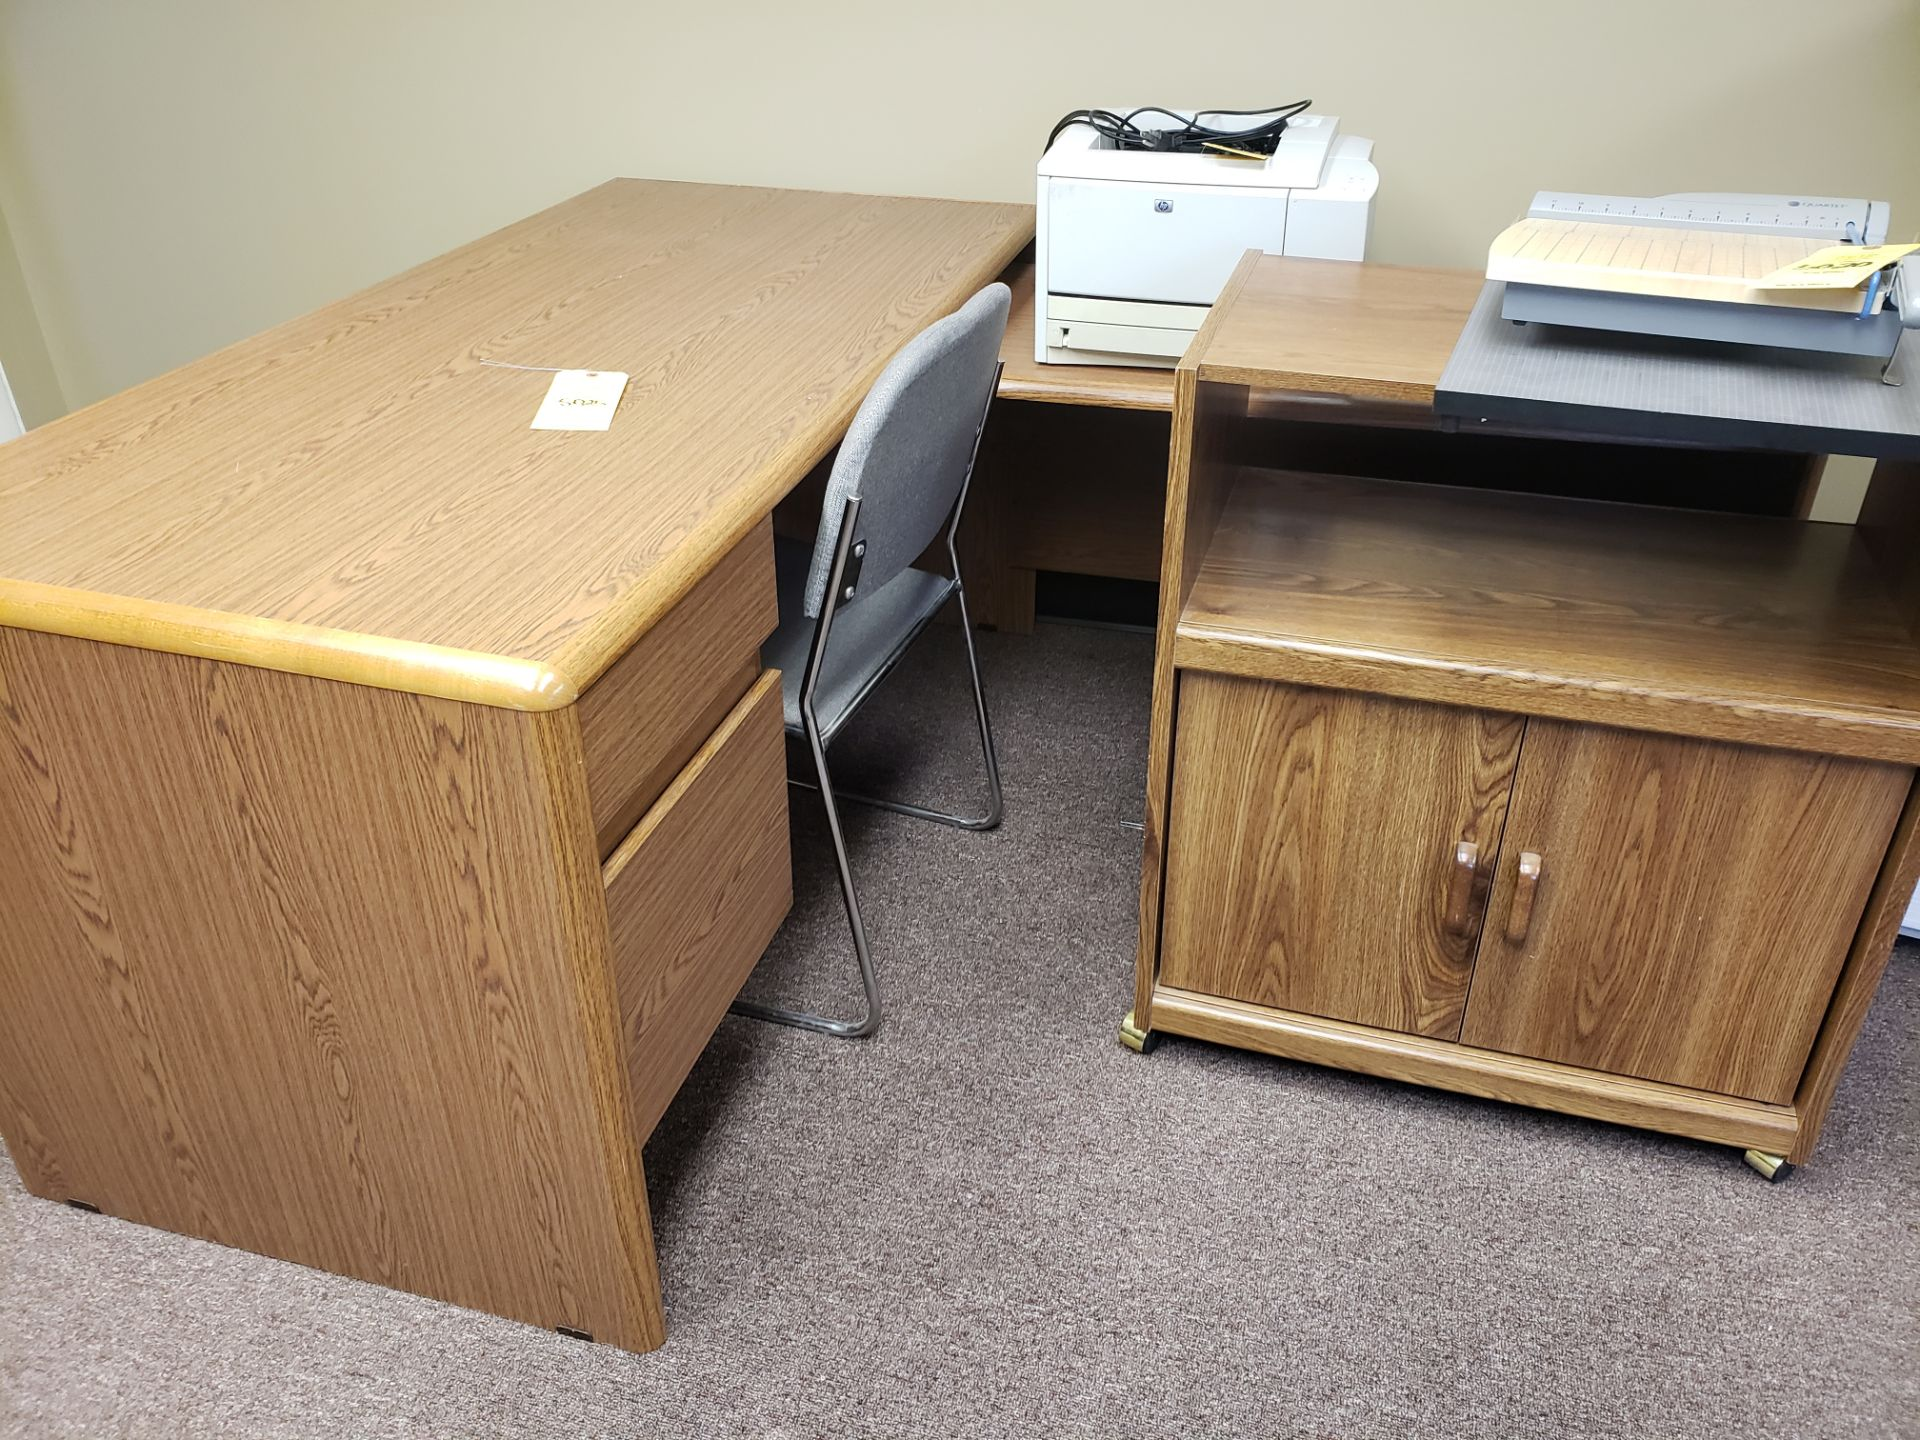 Lot 5025 - DESK & CART (LOCATED AT: 16335 LIMA ROAD BLDG. 4 HUNTERTOWN, IN 46748)